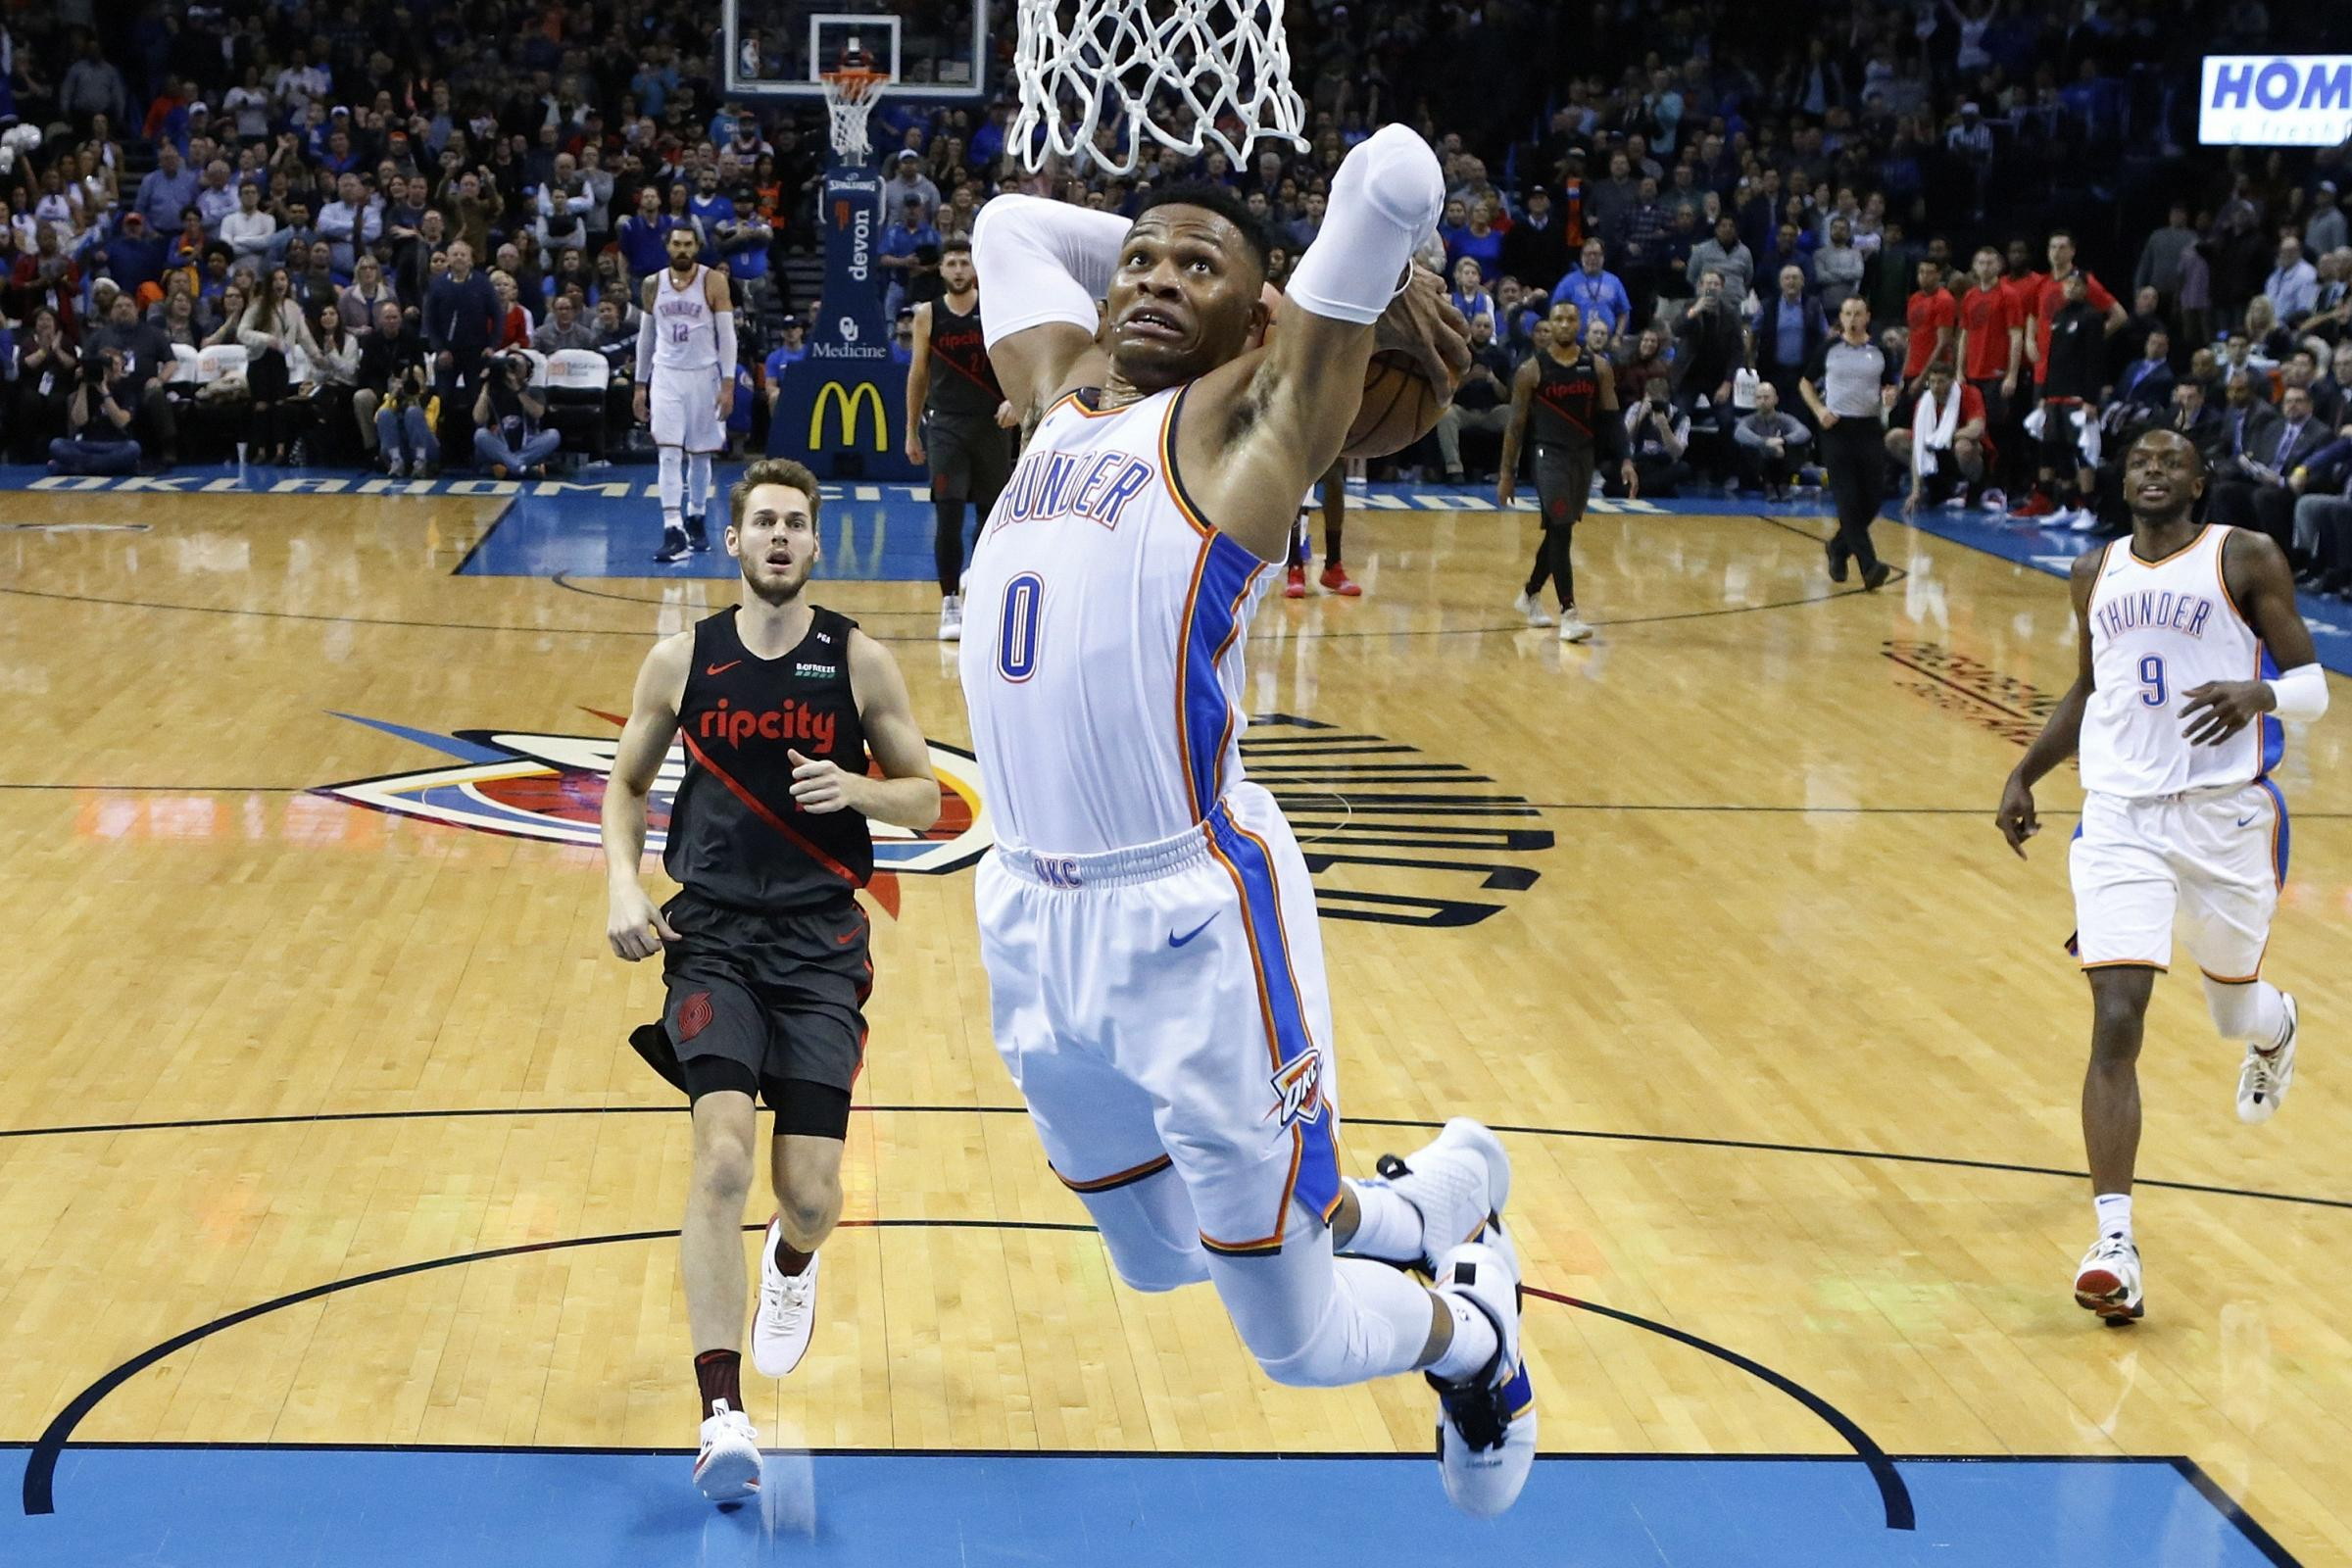 Russell Westbrook shone for Oklahoma City Thunder